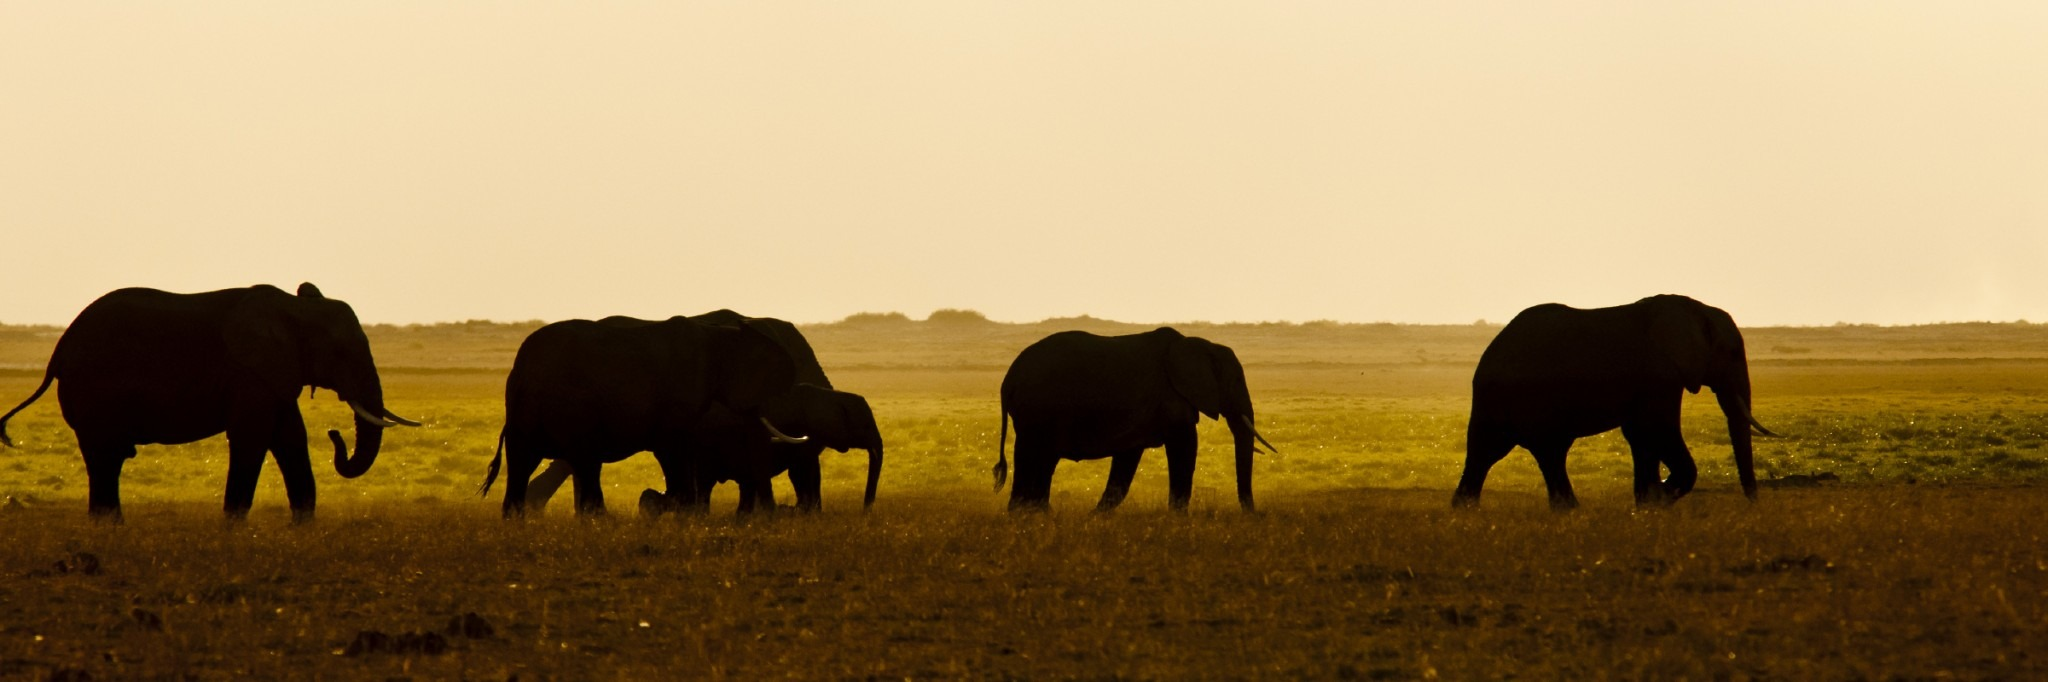 One Reason Why The U.S. Should Not Destroy Its Elephant Ivory